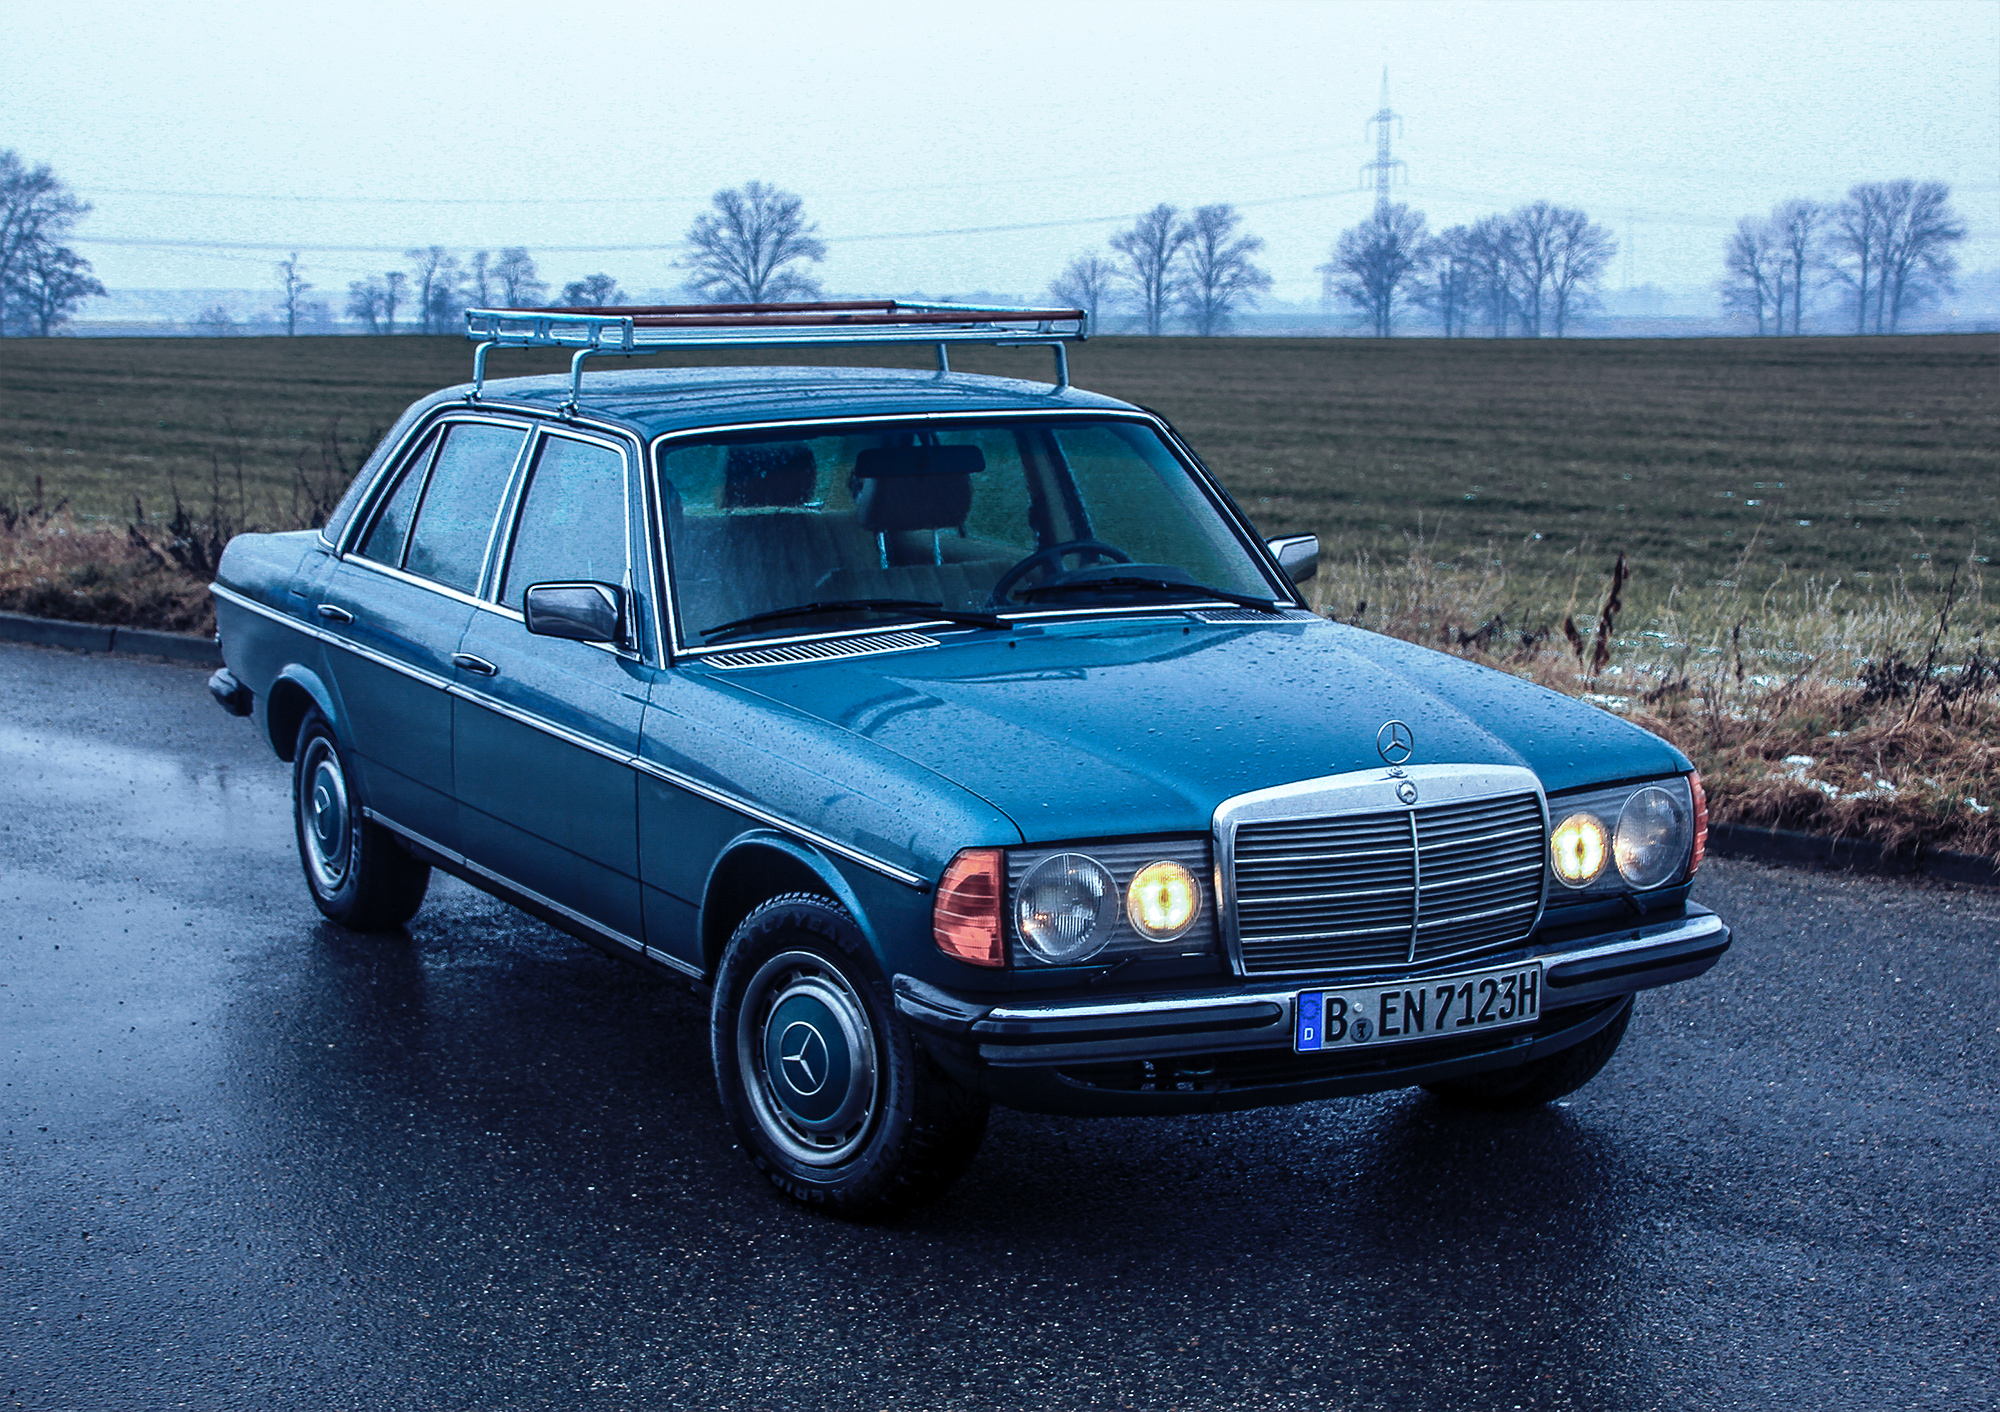 1982 Mercedes-Benz 230E - gone